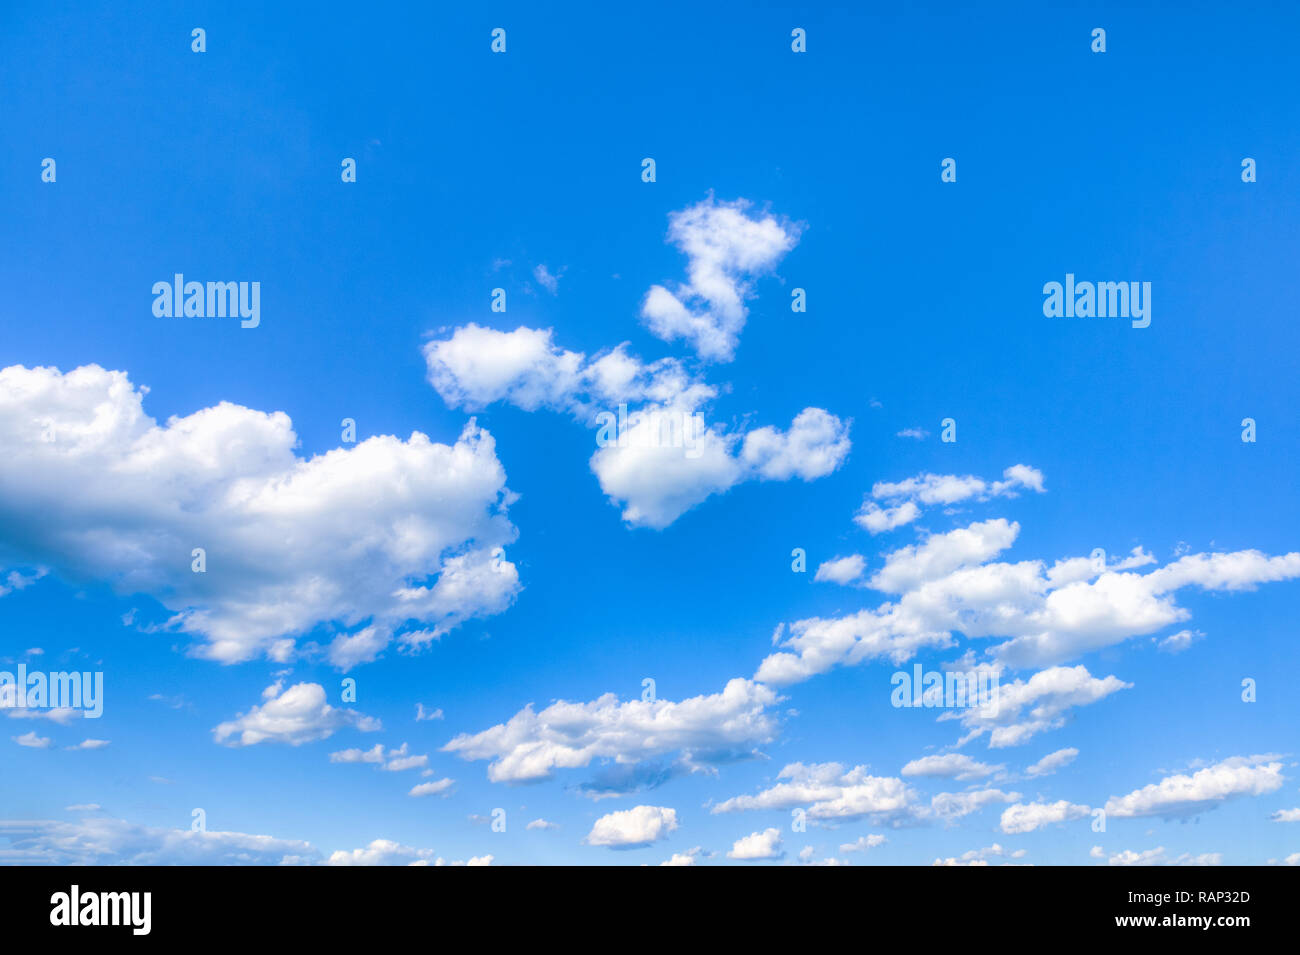 Background blue sky with cumulus white clouds - Stock Image